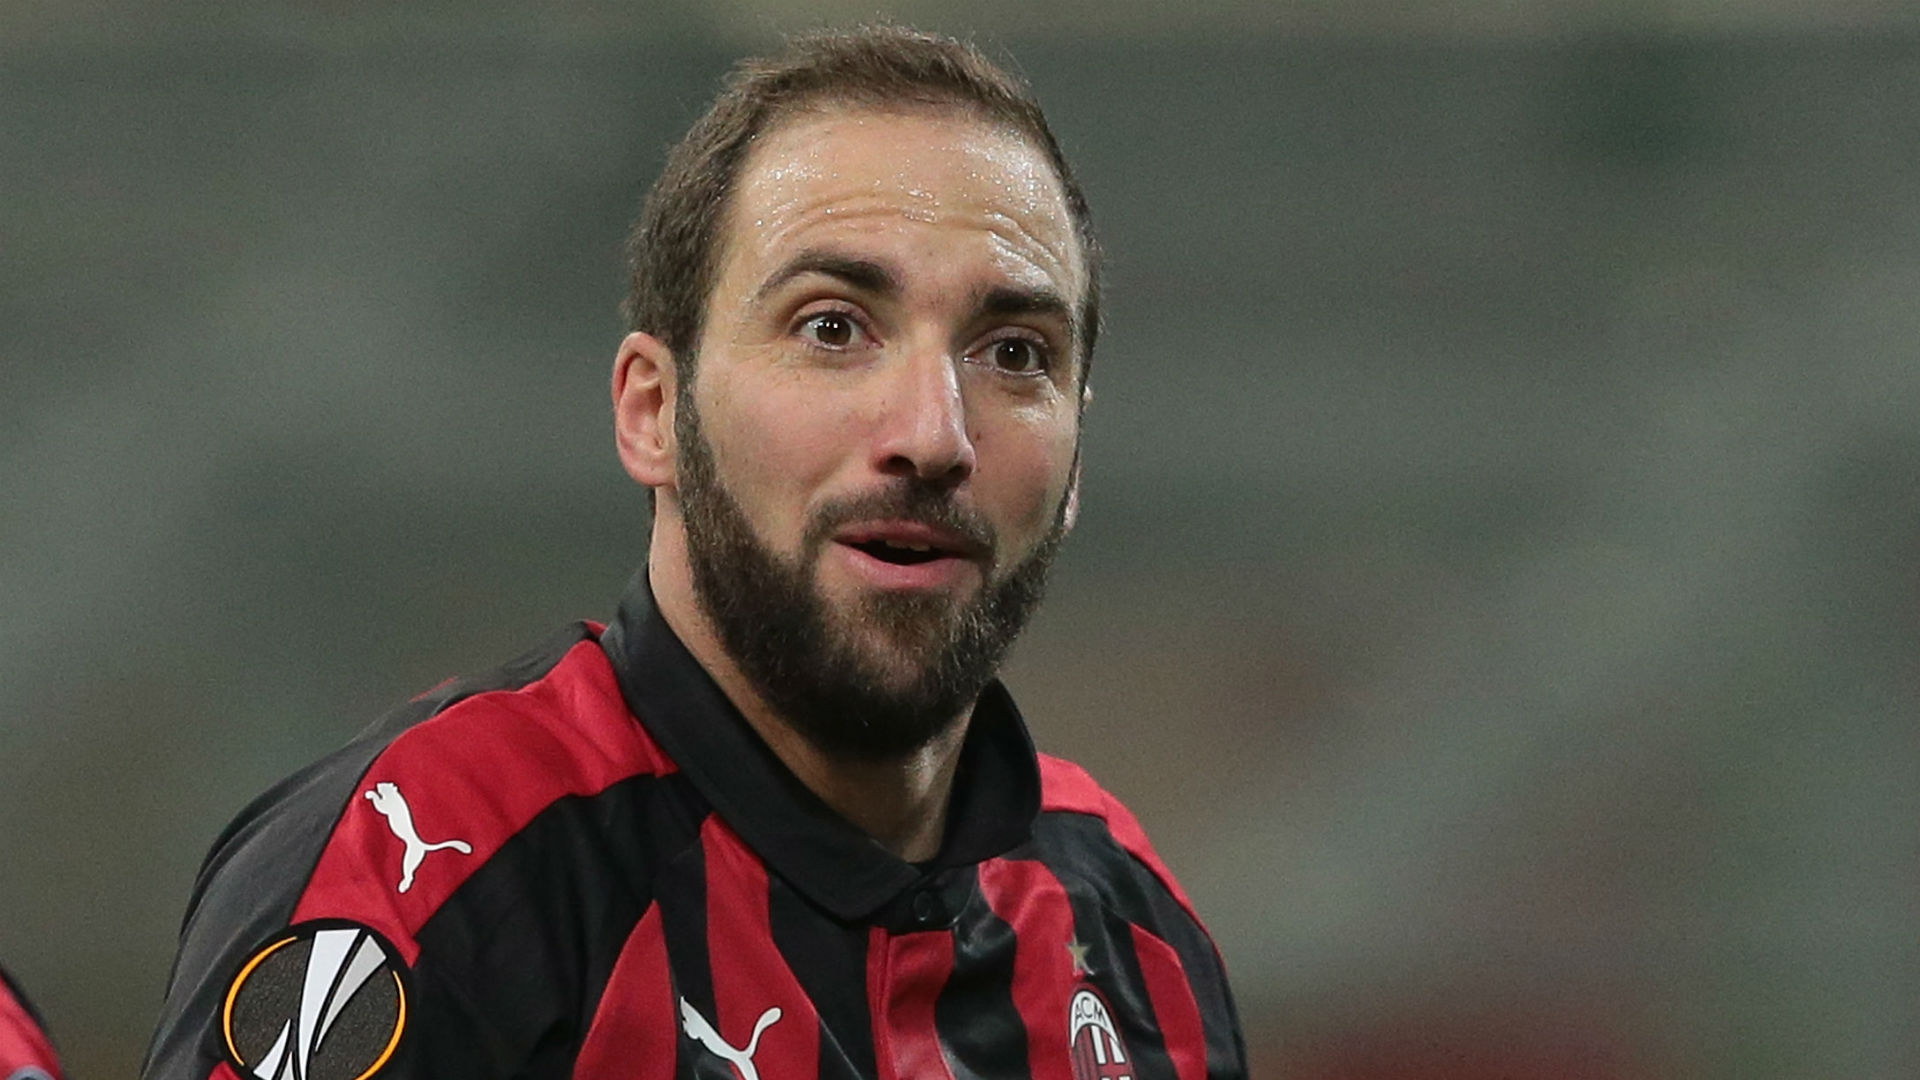 Capello hopes Higuain stays at Milan